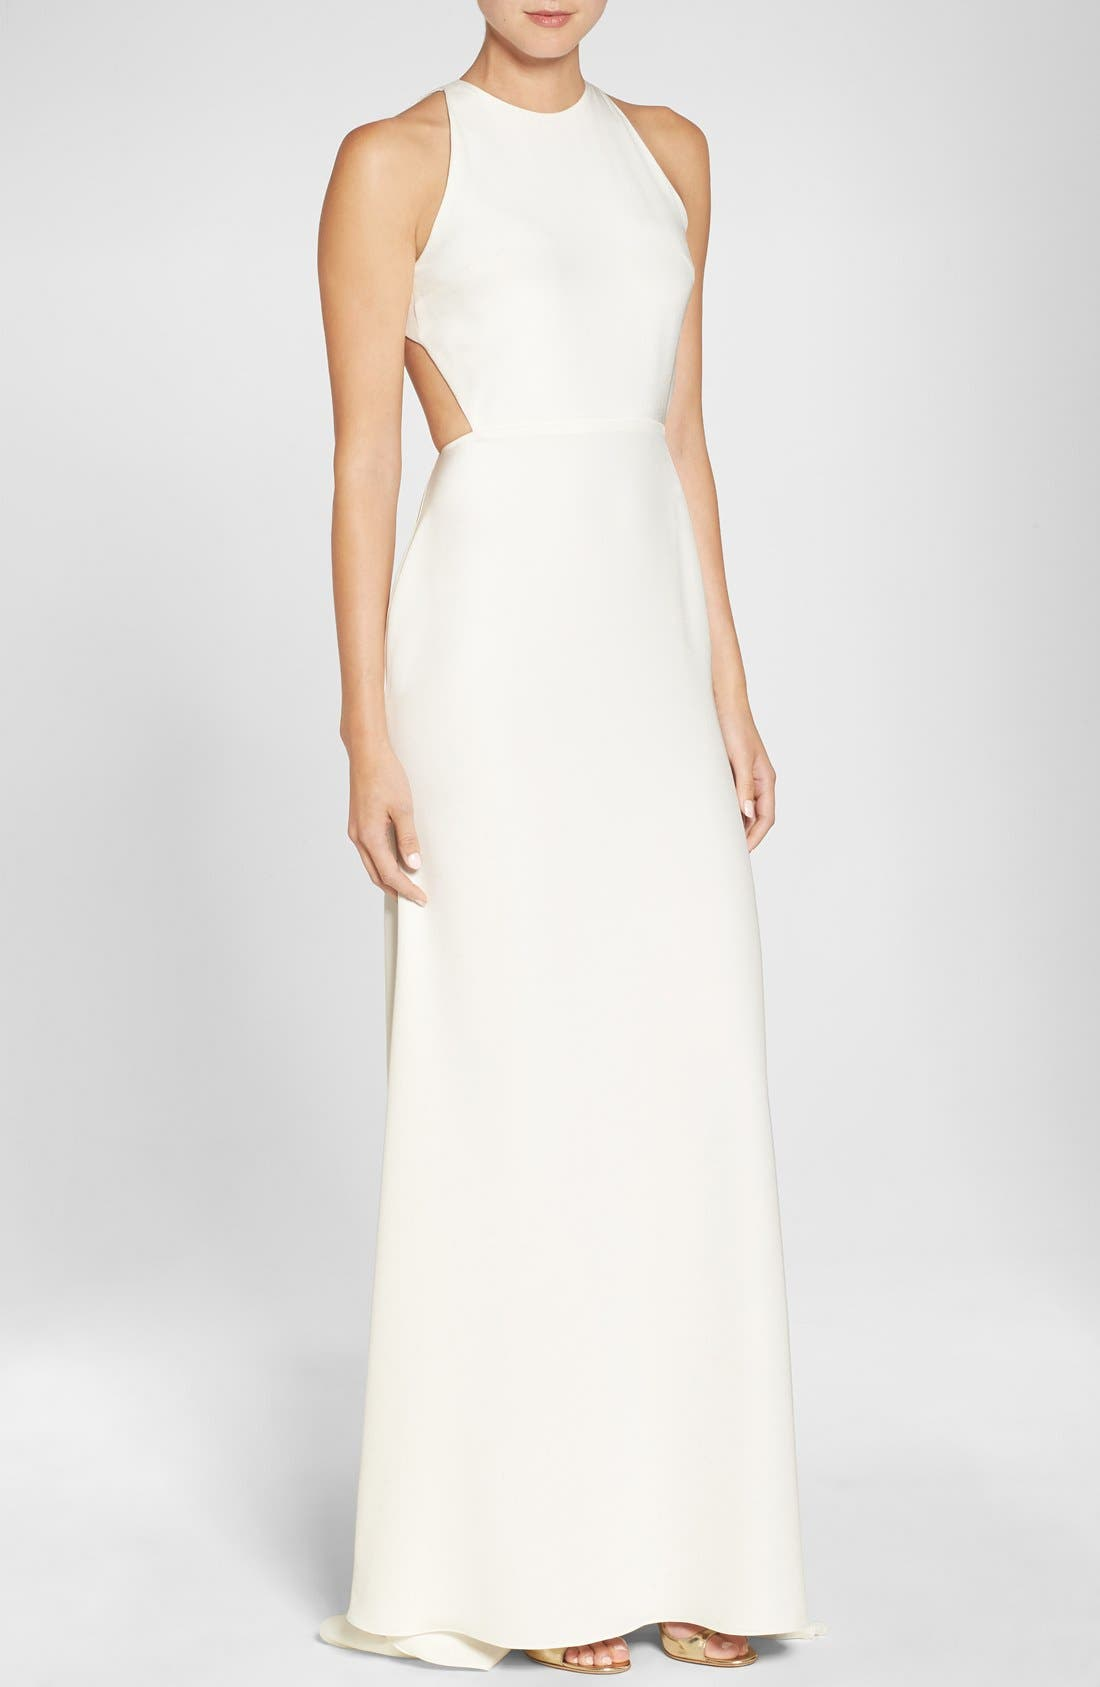 Alternate Image 1 Selected - Sarah Seven Cutout Back Silk Crepe Halter Style Gown